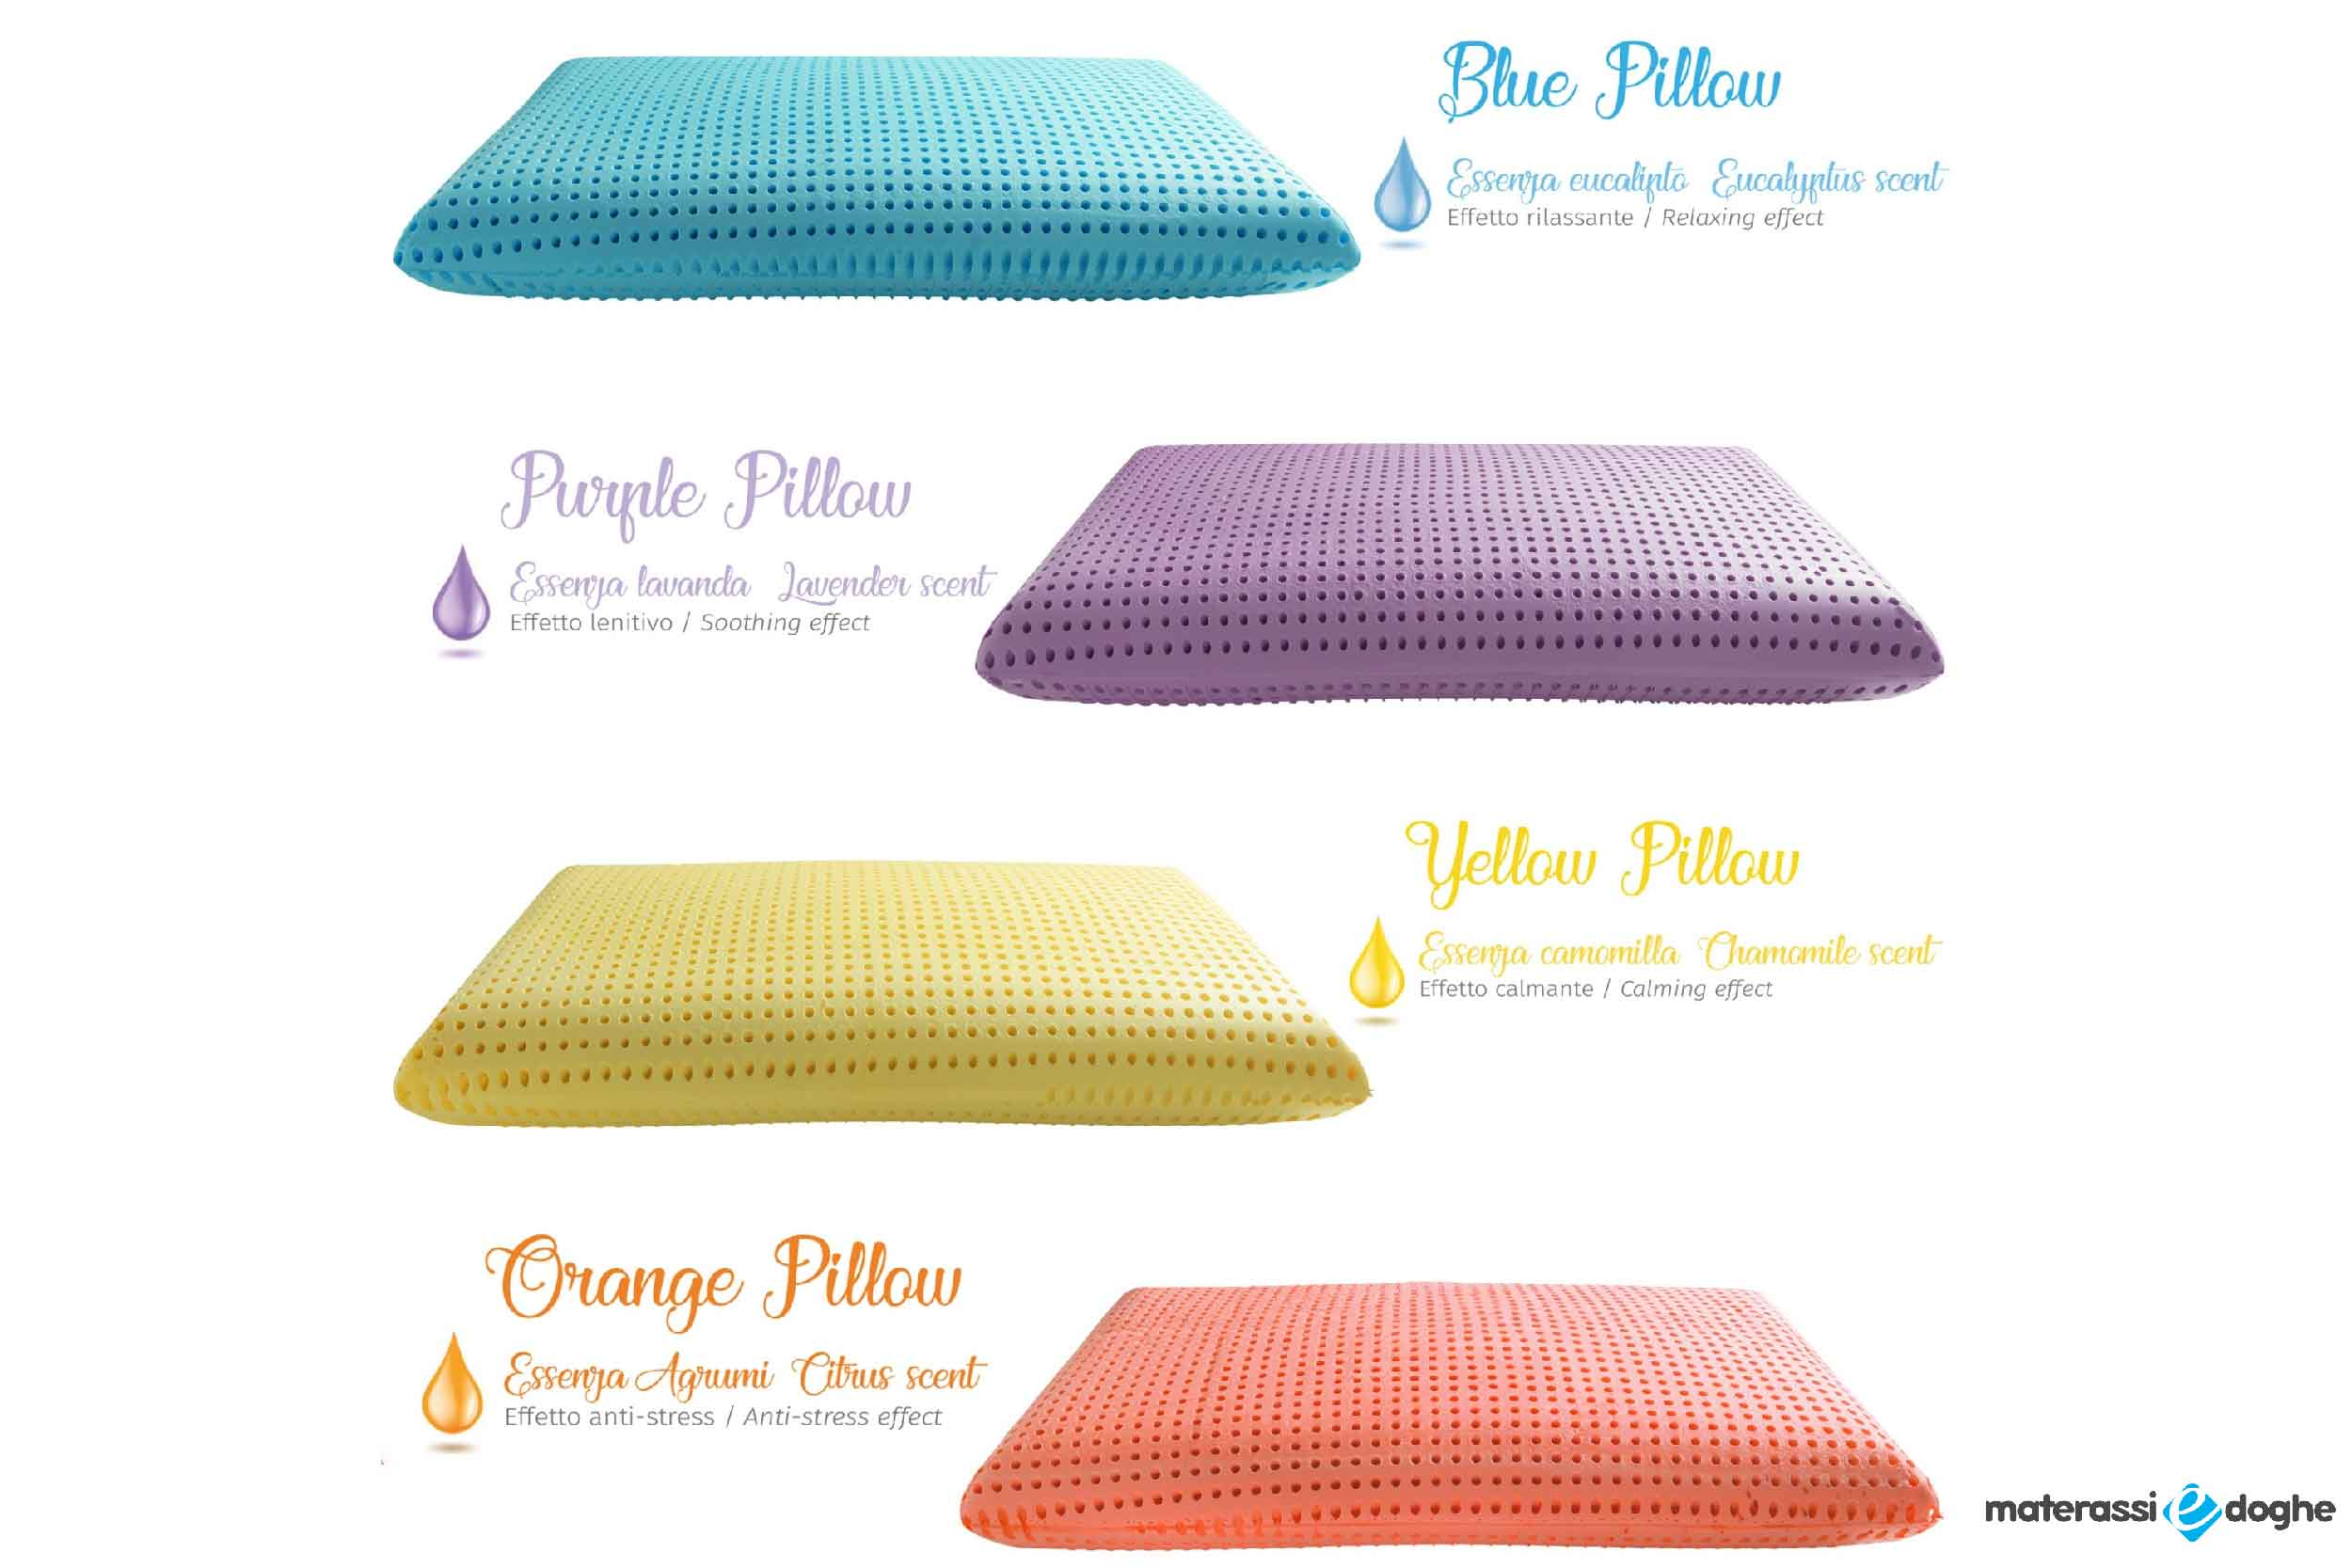 Water-based Memory Foam Pillow Enriched With Natural Essences, Highly Breathable